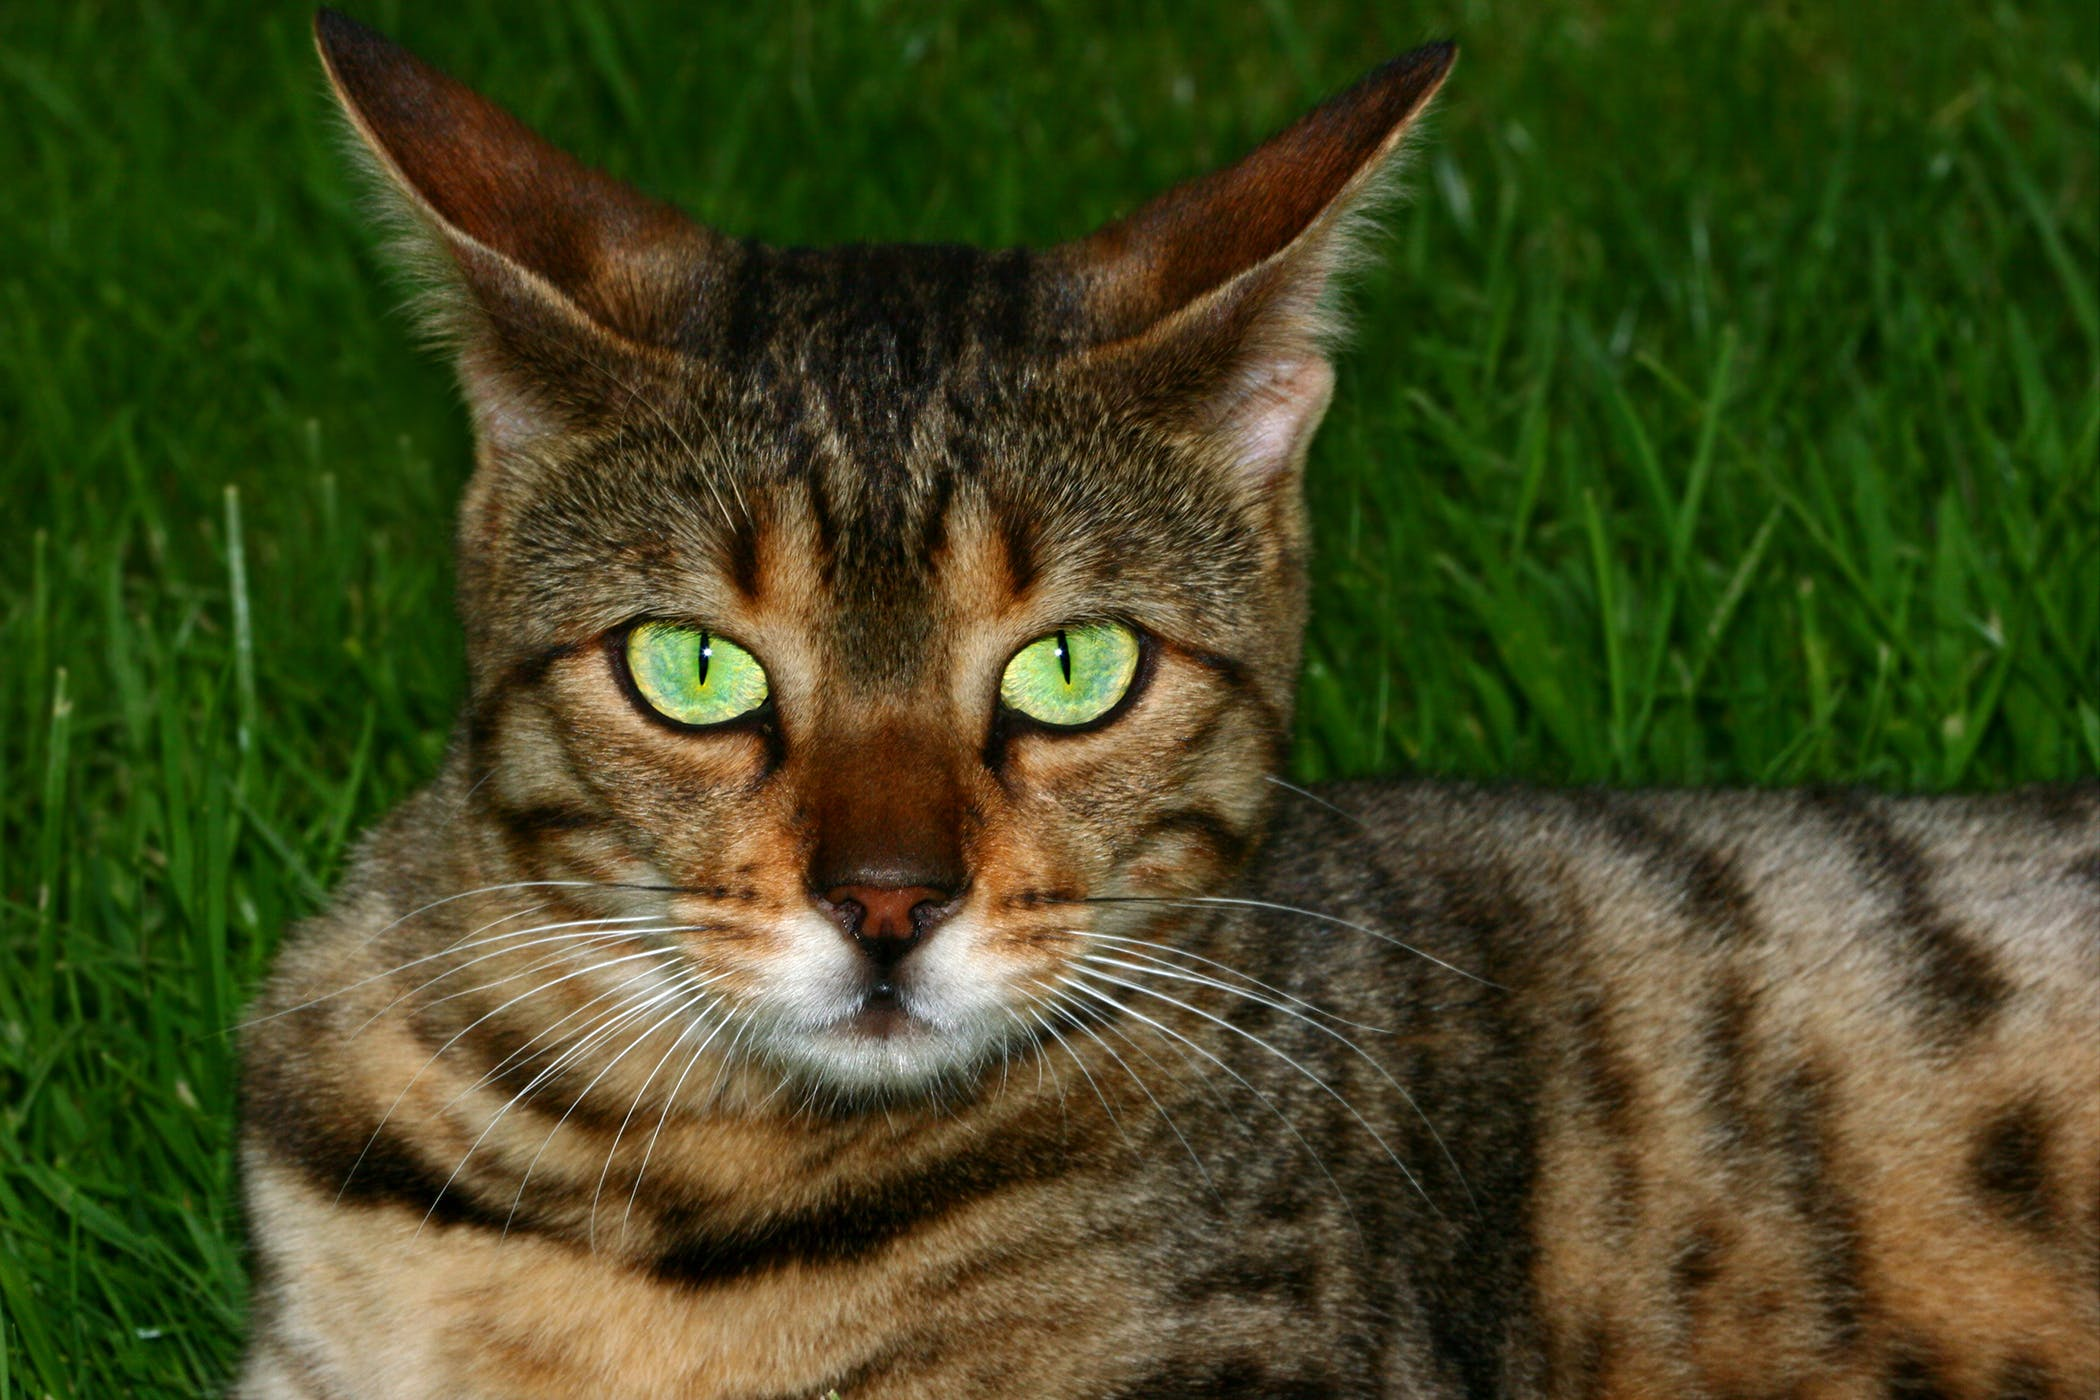 Hearing Loss in Cats